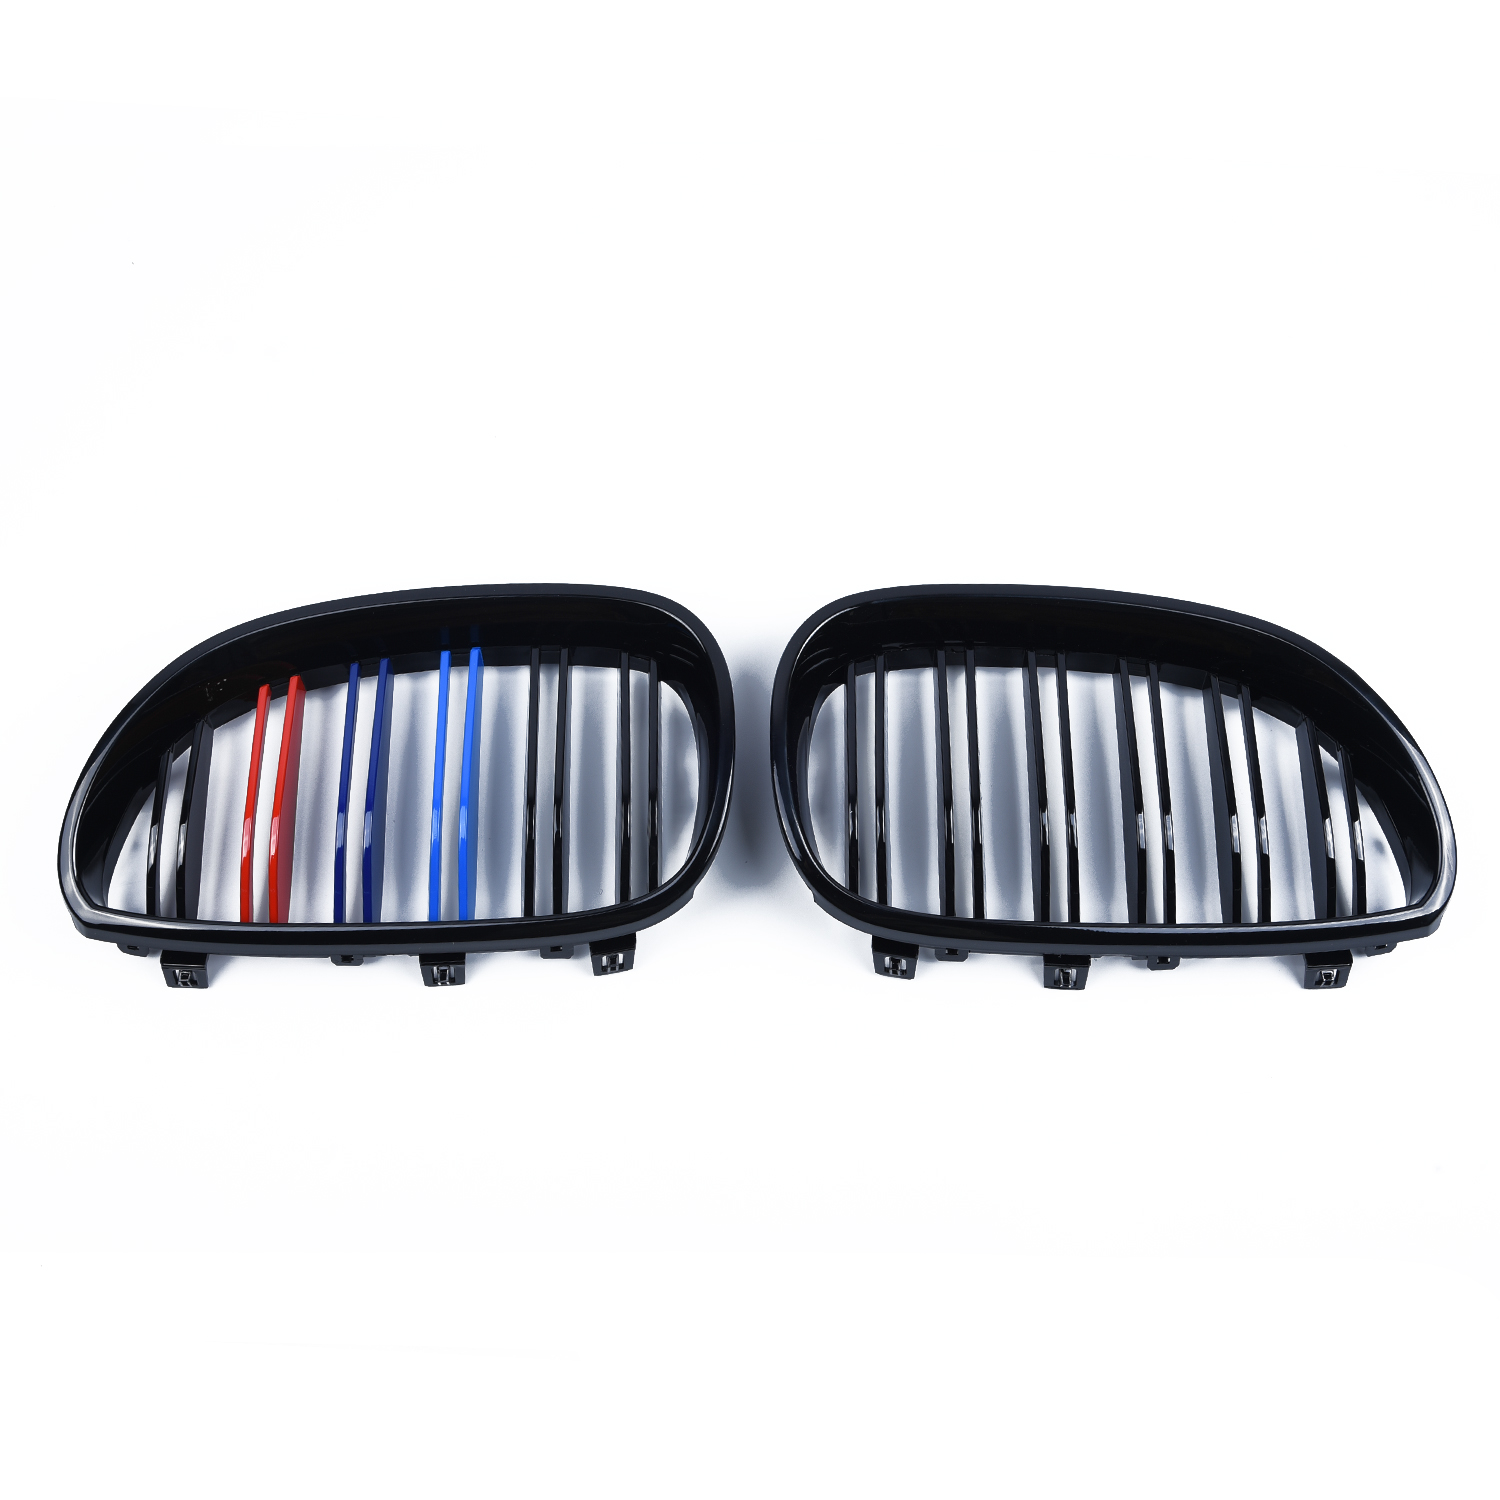 Left Grilles M-Color Front Kidney Grill for <font><b>BMW</b></font> <font><b>E60</b></font> E61 2003-2010 <font><b>5</b></font> <font><b>Series</b></font> Replacement 33*18*<font><b>5</b></font>.9cm Right image